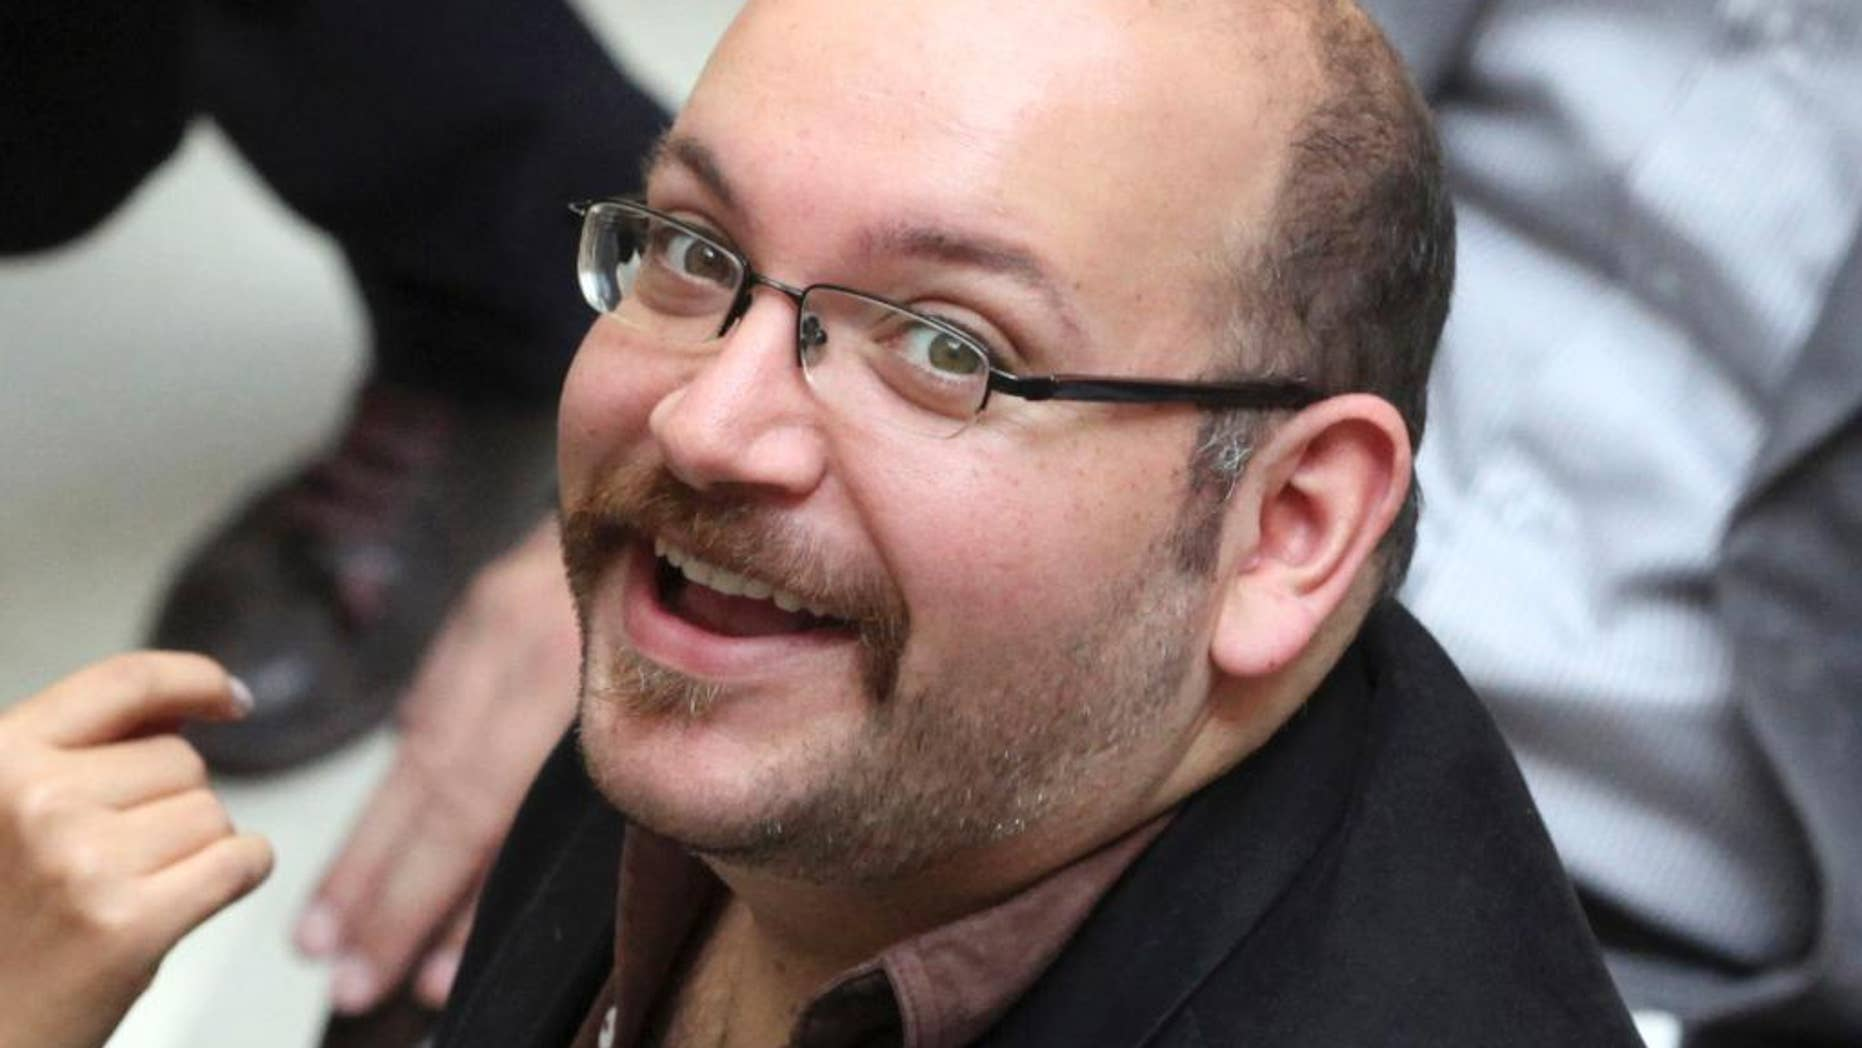 FILE - In this photo April 11, 2013 file photo, Jason Rezaian, an Iranian-American correspondent for The Washington Post, smiles as he attends a presidential campaign of President Hassan Rouhani in Tehran, Iran. Rezaian will face the second day of his closed-door espionage trial on Monday, June 8, 2015, Iran's semi-official ISNA news agency reported Wednesday. (AP Photo/Vahid Salemi, File)